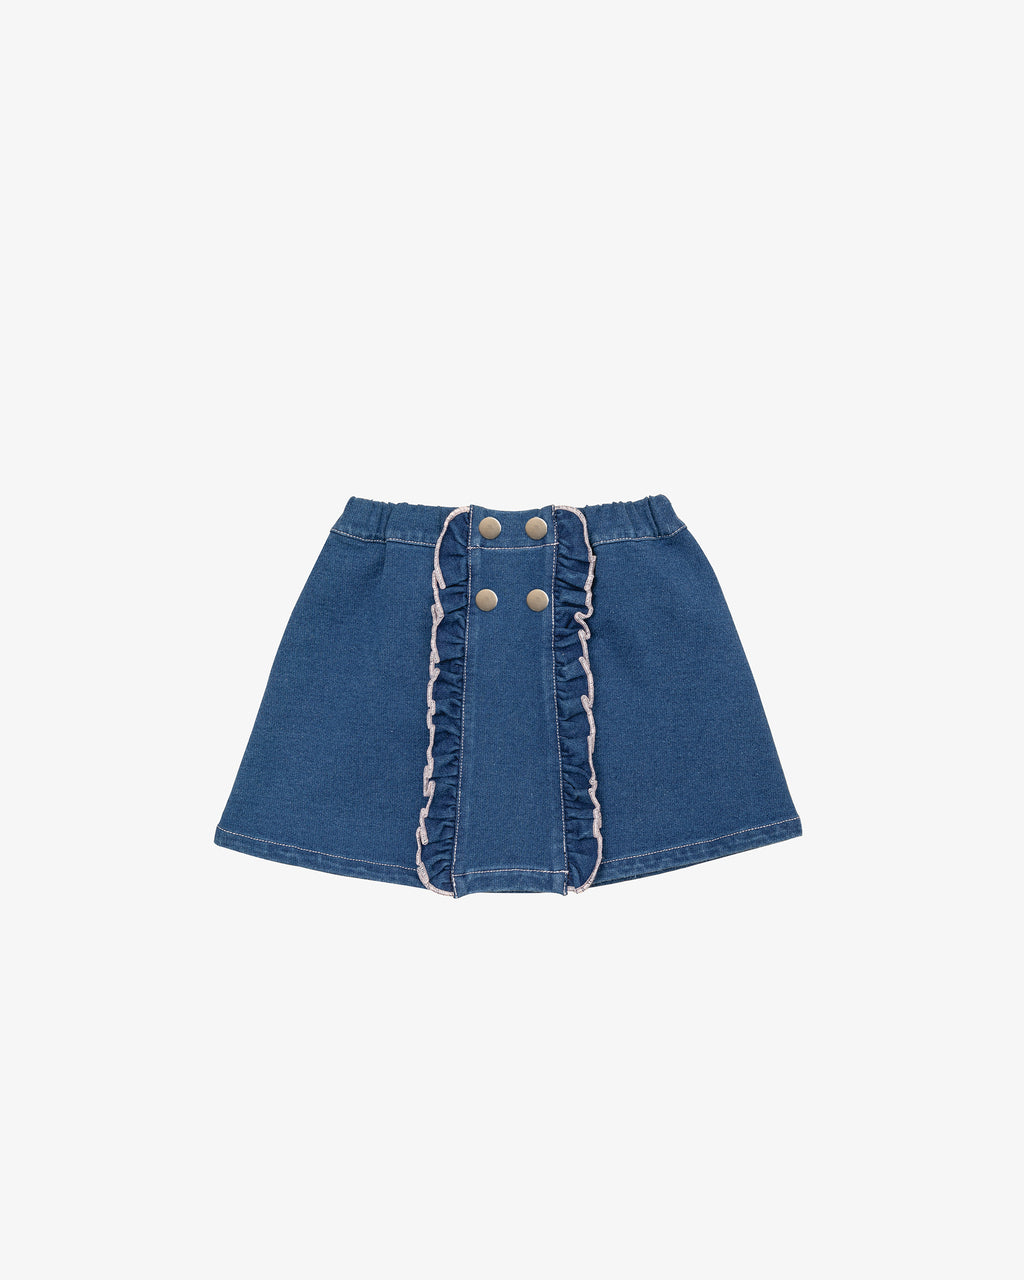 DENIM RUFFLE SHORT SKIRT